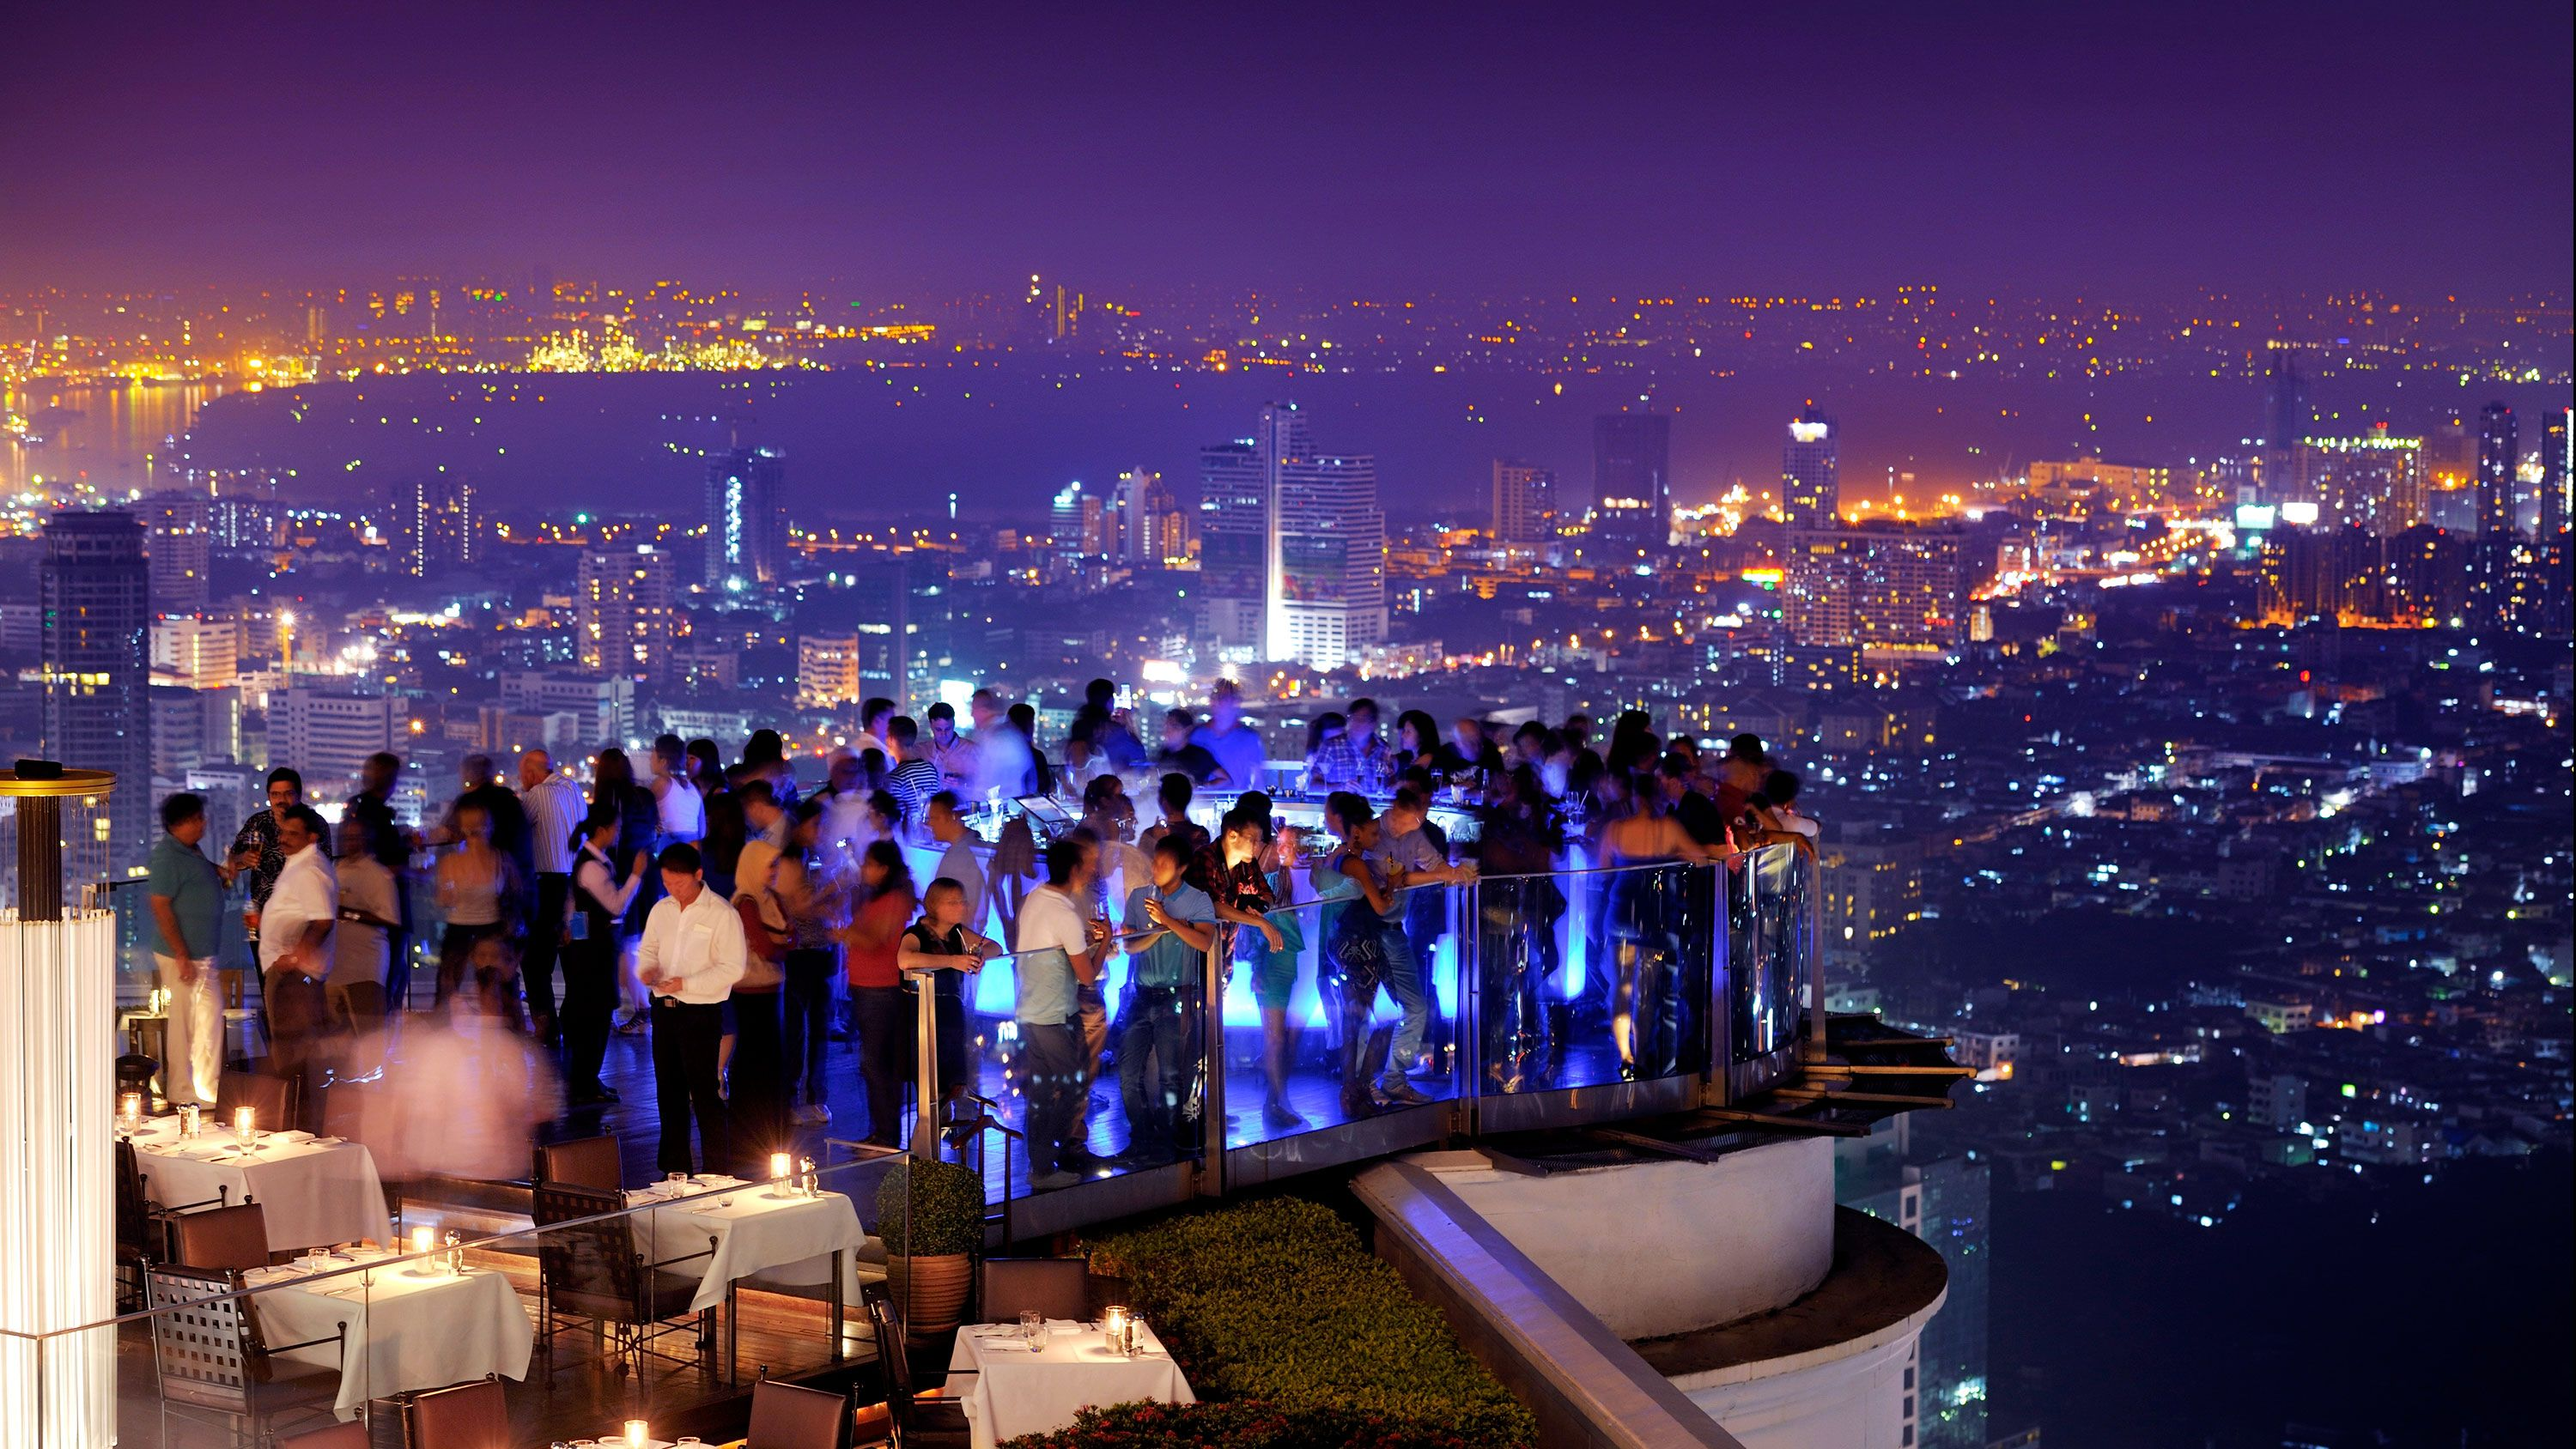 The World S Best Rooftop Bars Best Rooftop Bar Bangkok Sky Bar Bangkok Rooftop Bar Bangkok